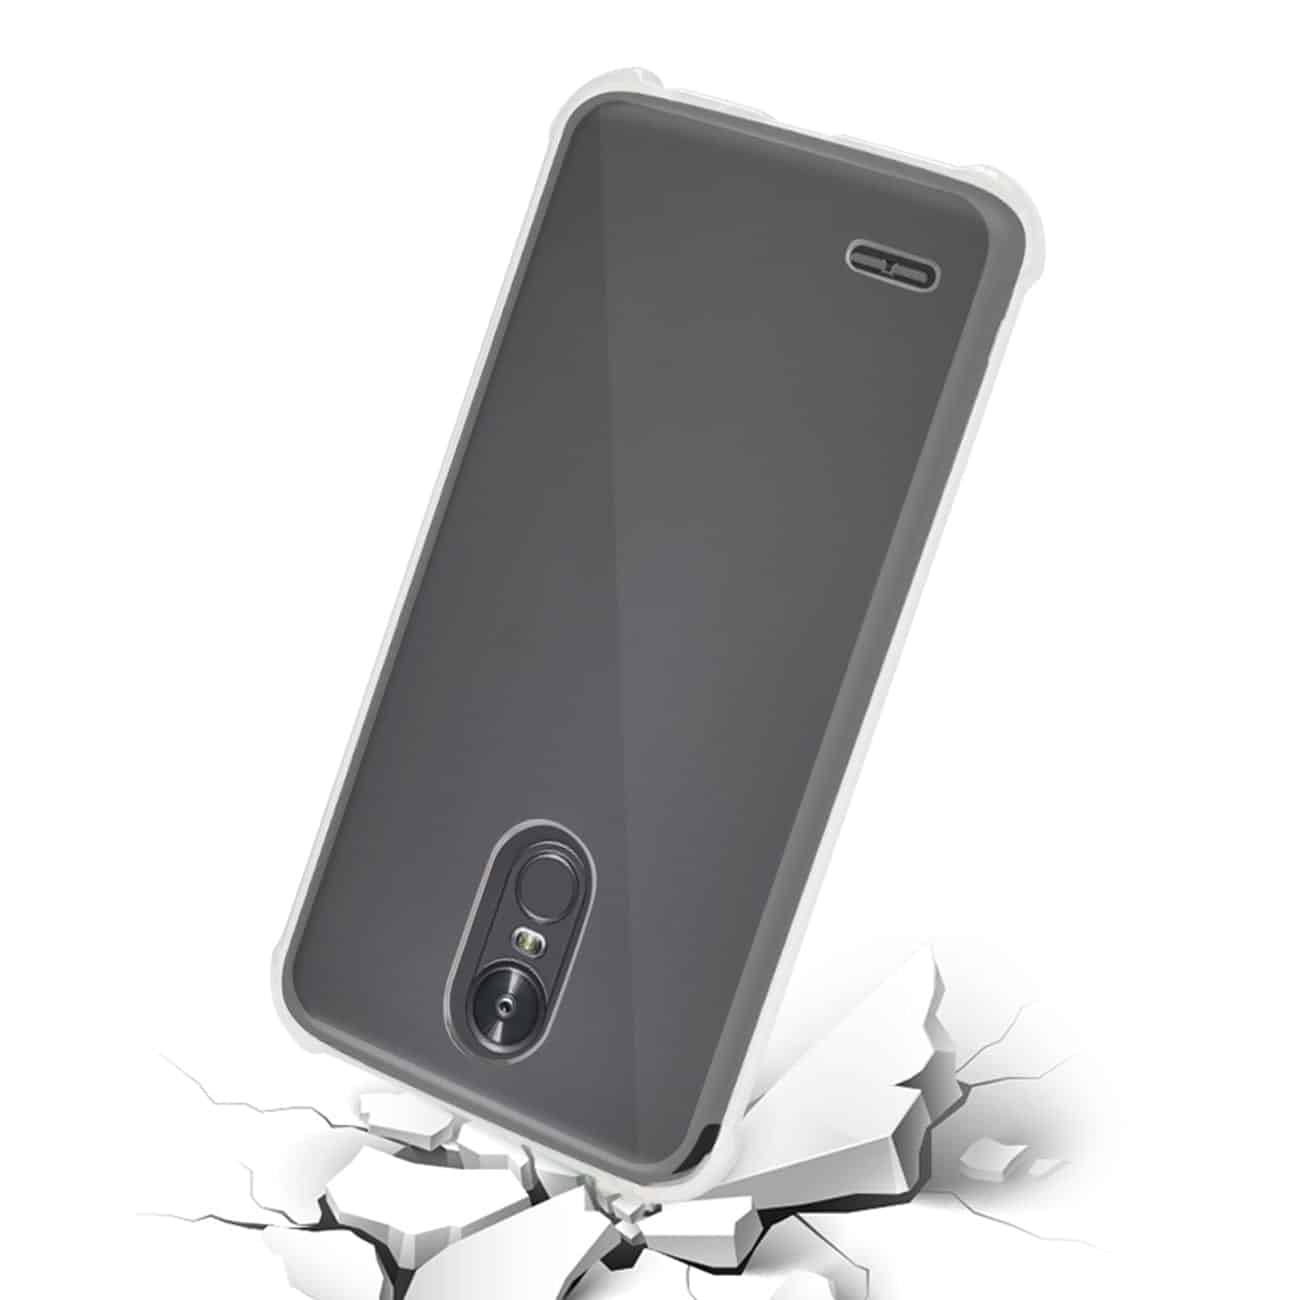 LG STYLO 3 STYLUS 3 CLEAR BUMPER CASE WITH AIR CUSHION PROTECTION IN CLEAR